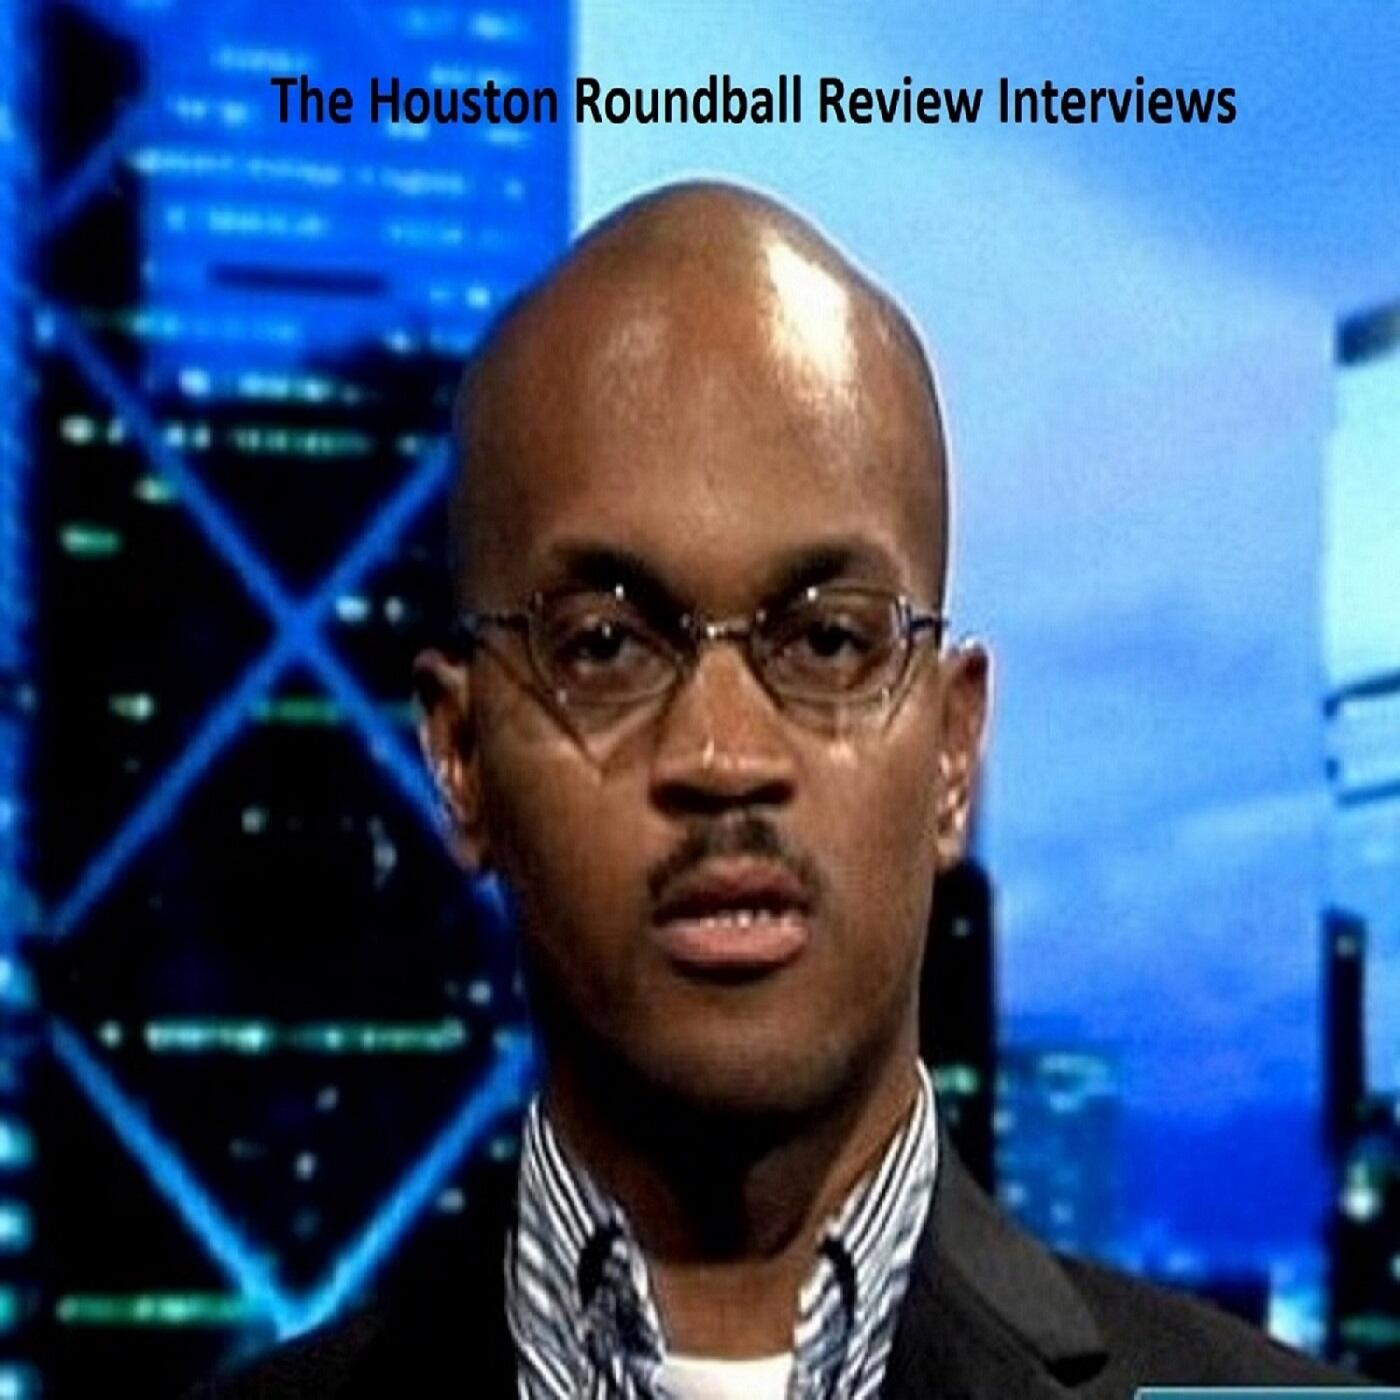 The Houston Roundball Review Interviews